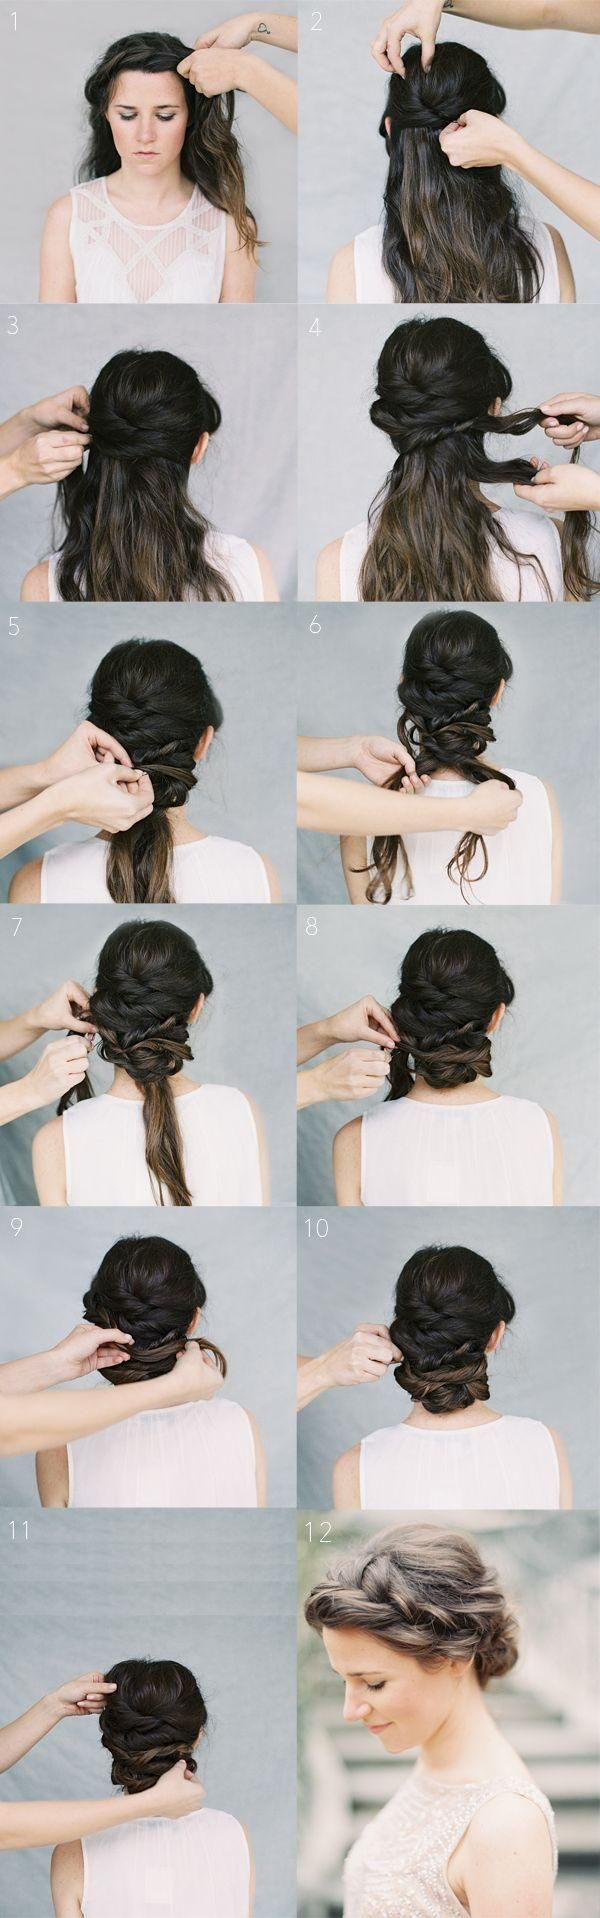 111 best Hair Style images on Pinterest | Wedding hair styles, Hair ...